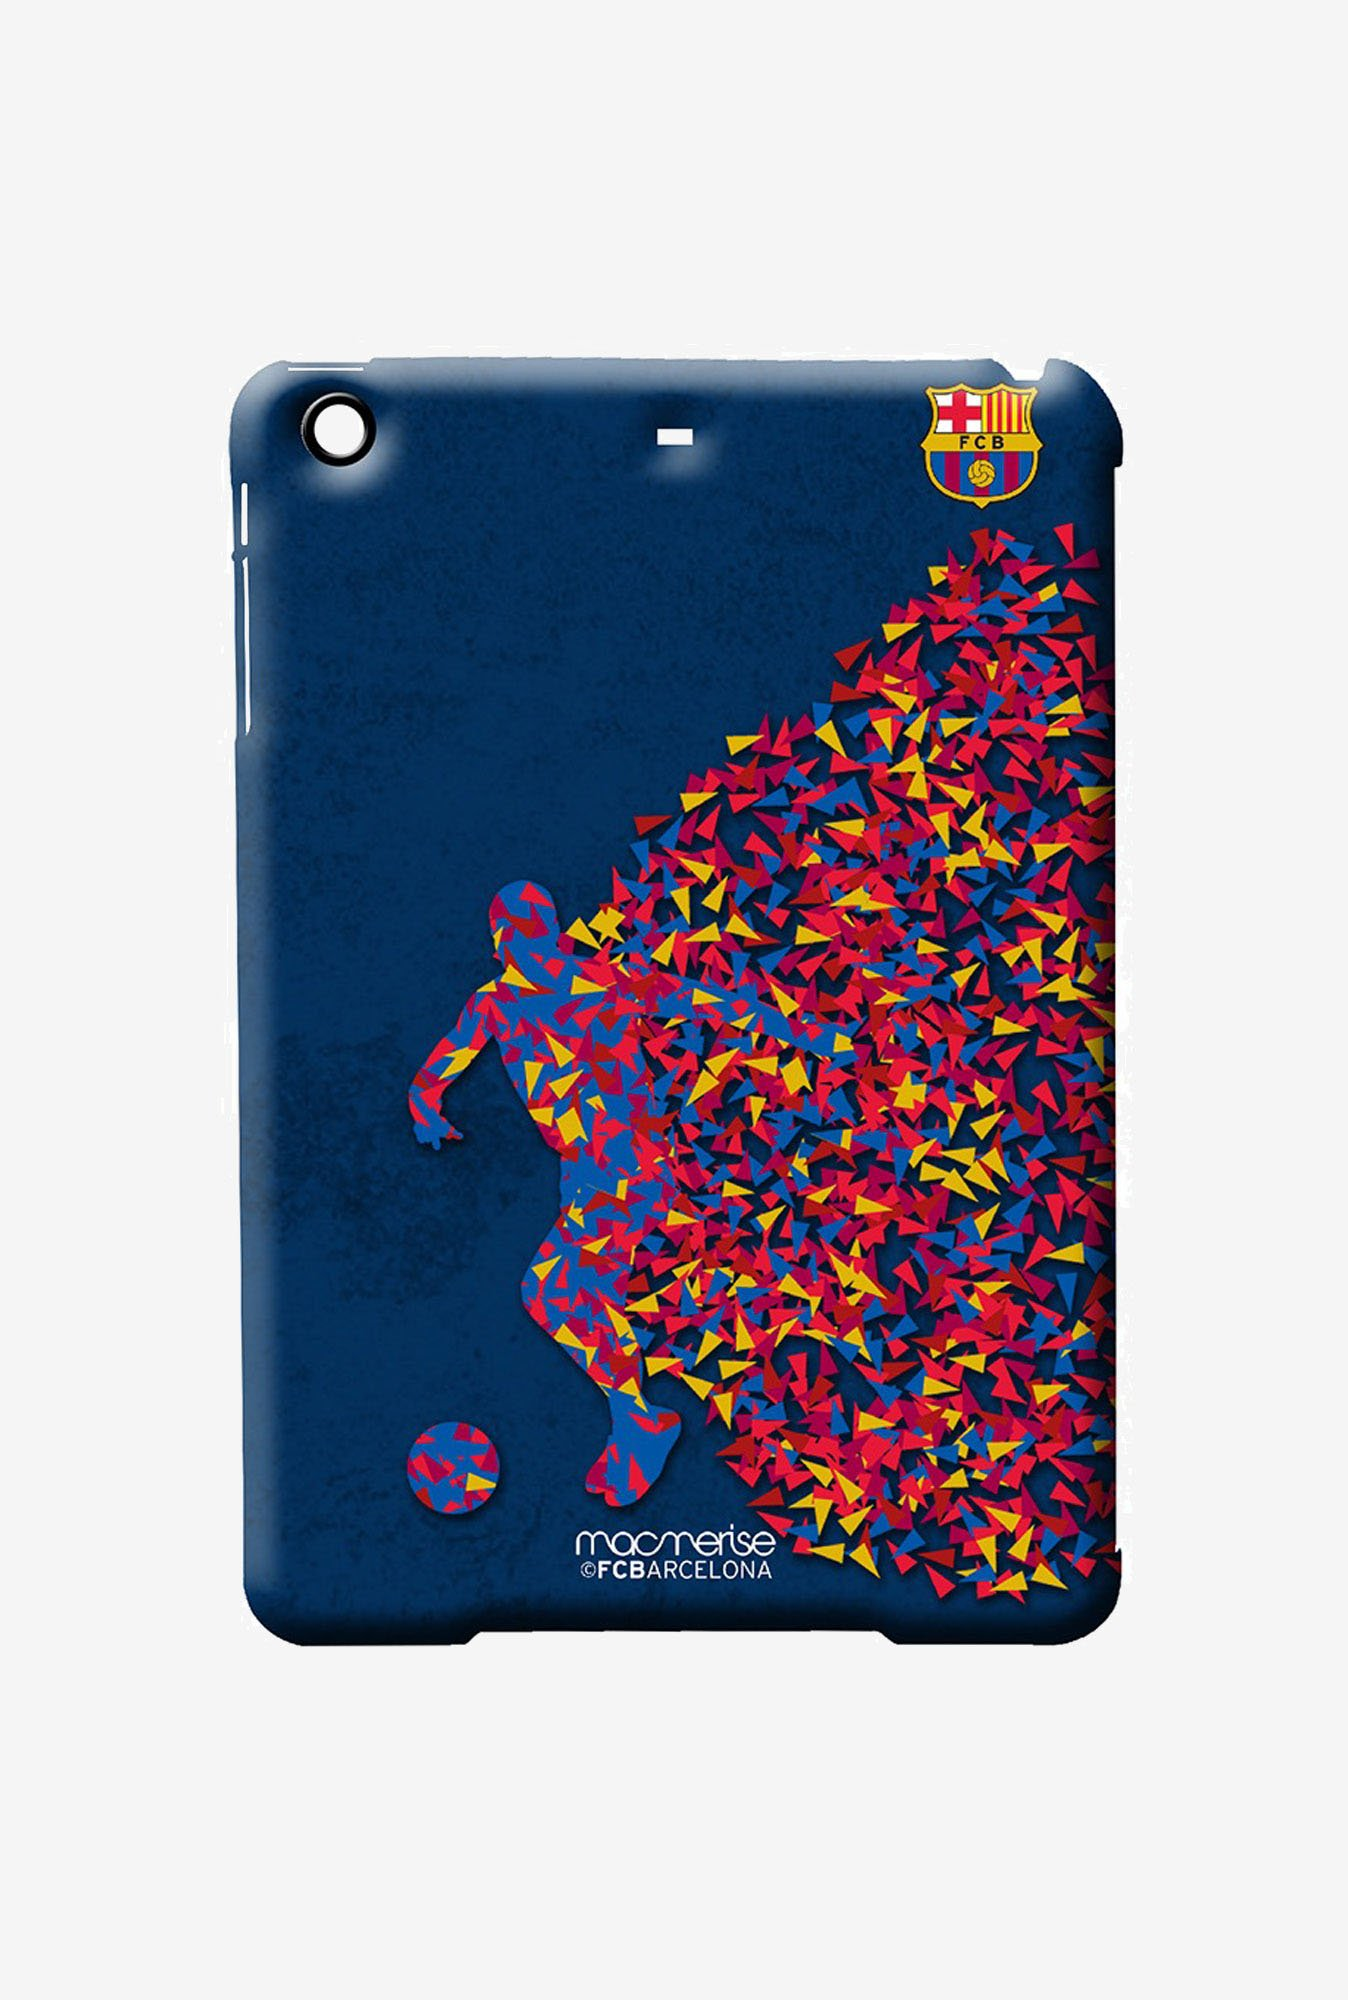 Macmerise FCB Asymmetrical Art Pro Case for iPad 2/3/4